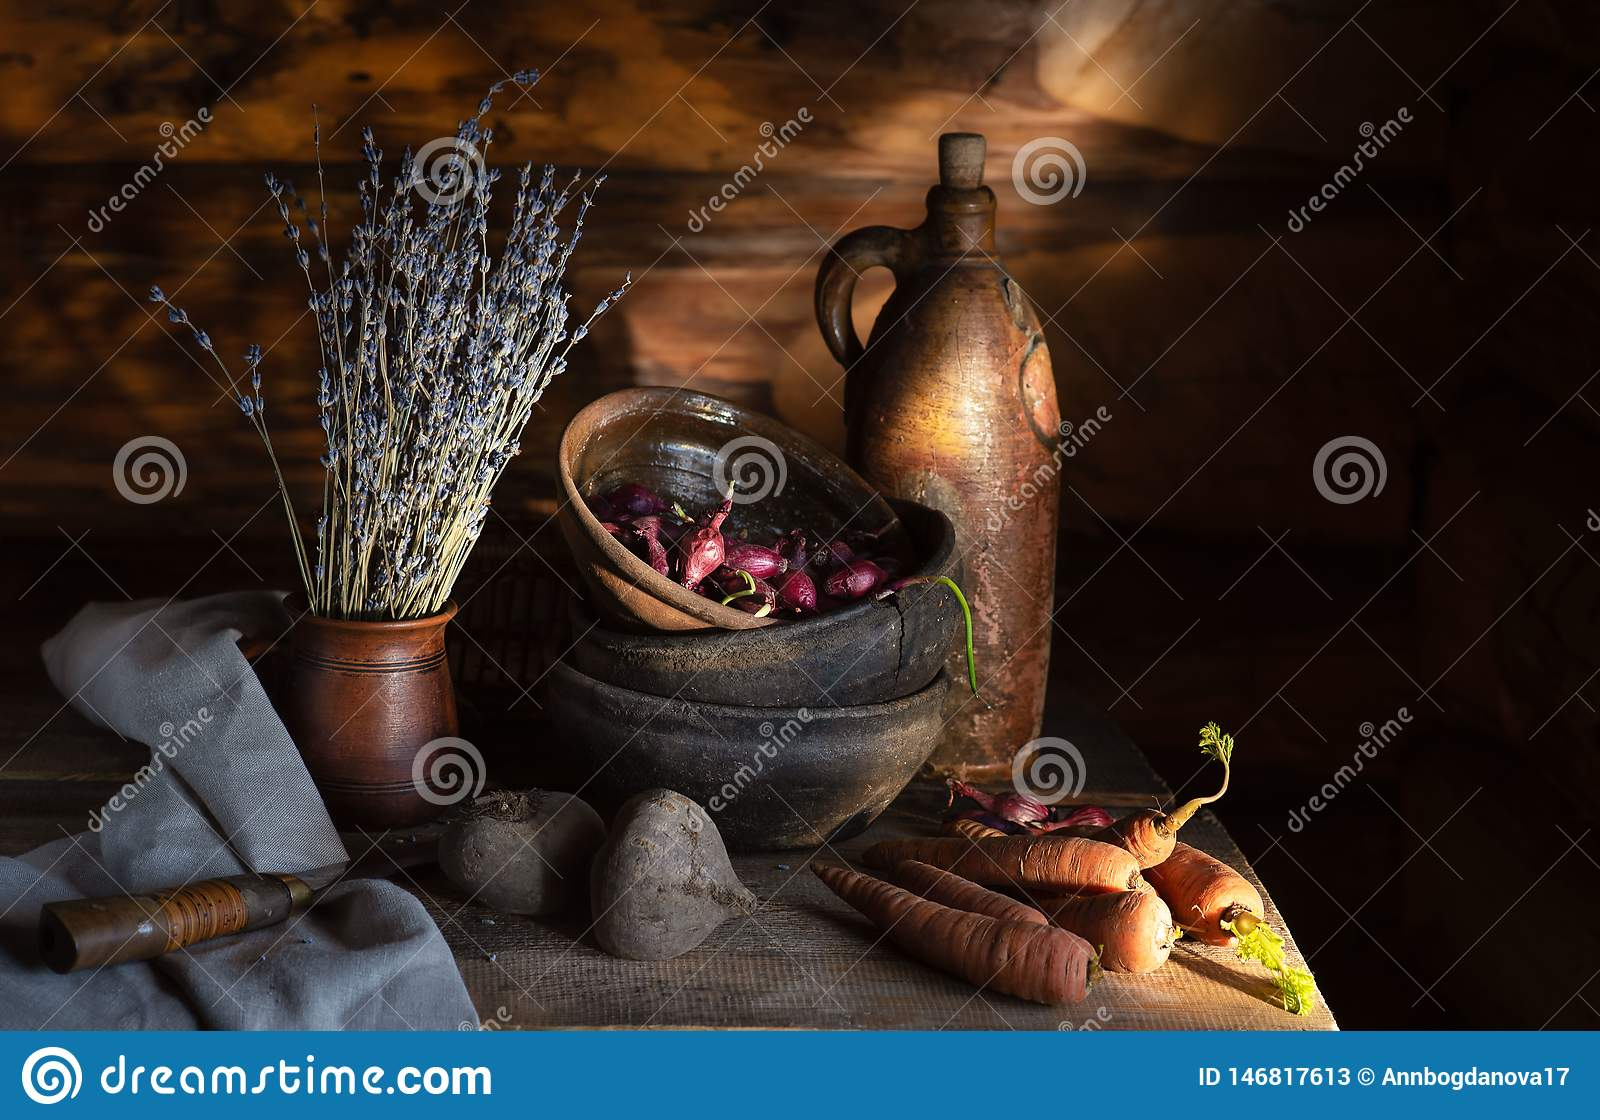 Still life in a village hut. old ceramic dishes and vegetables on the table in the morning sun